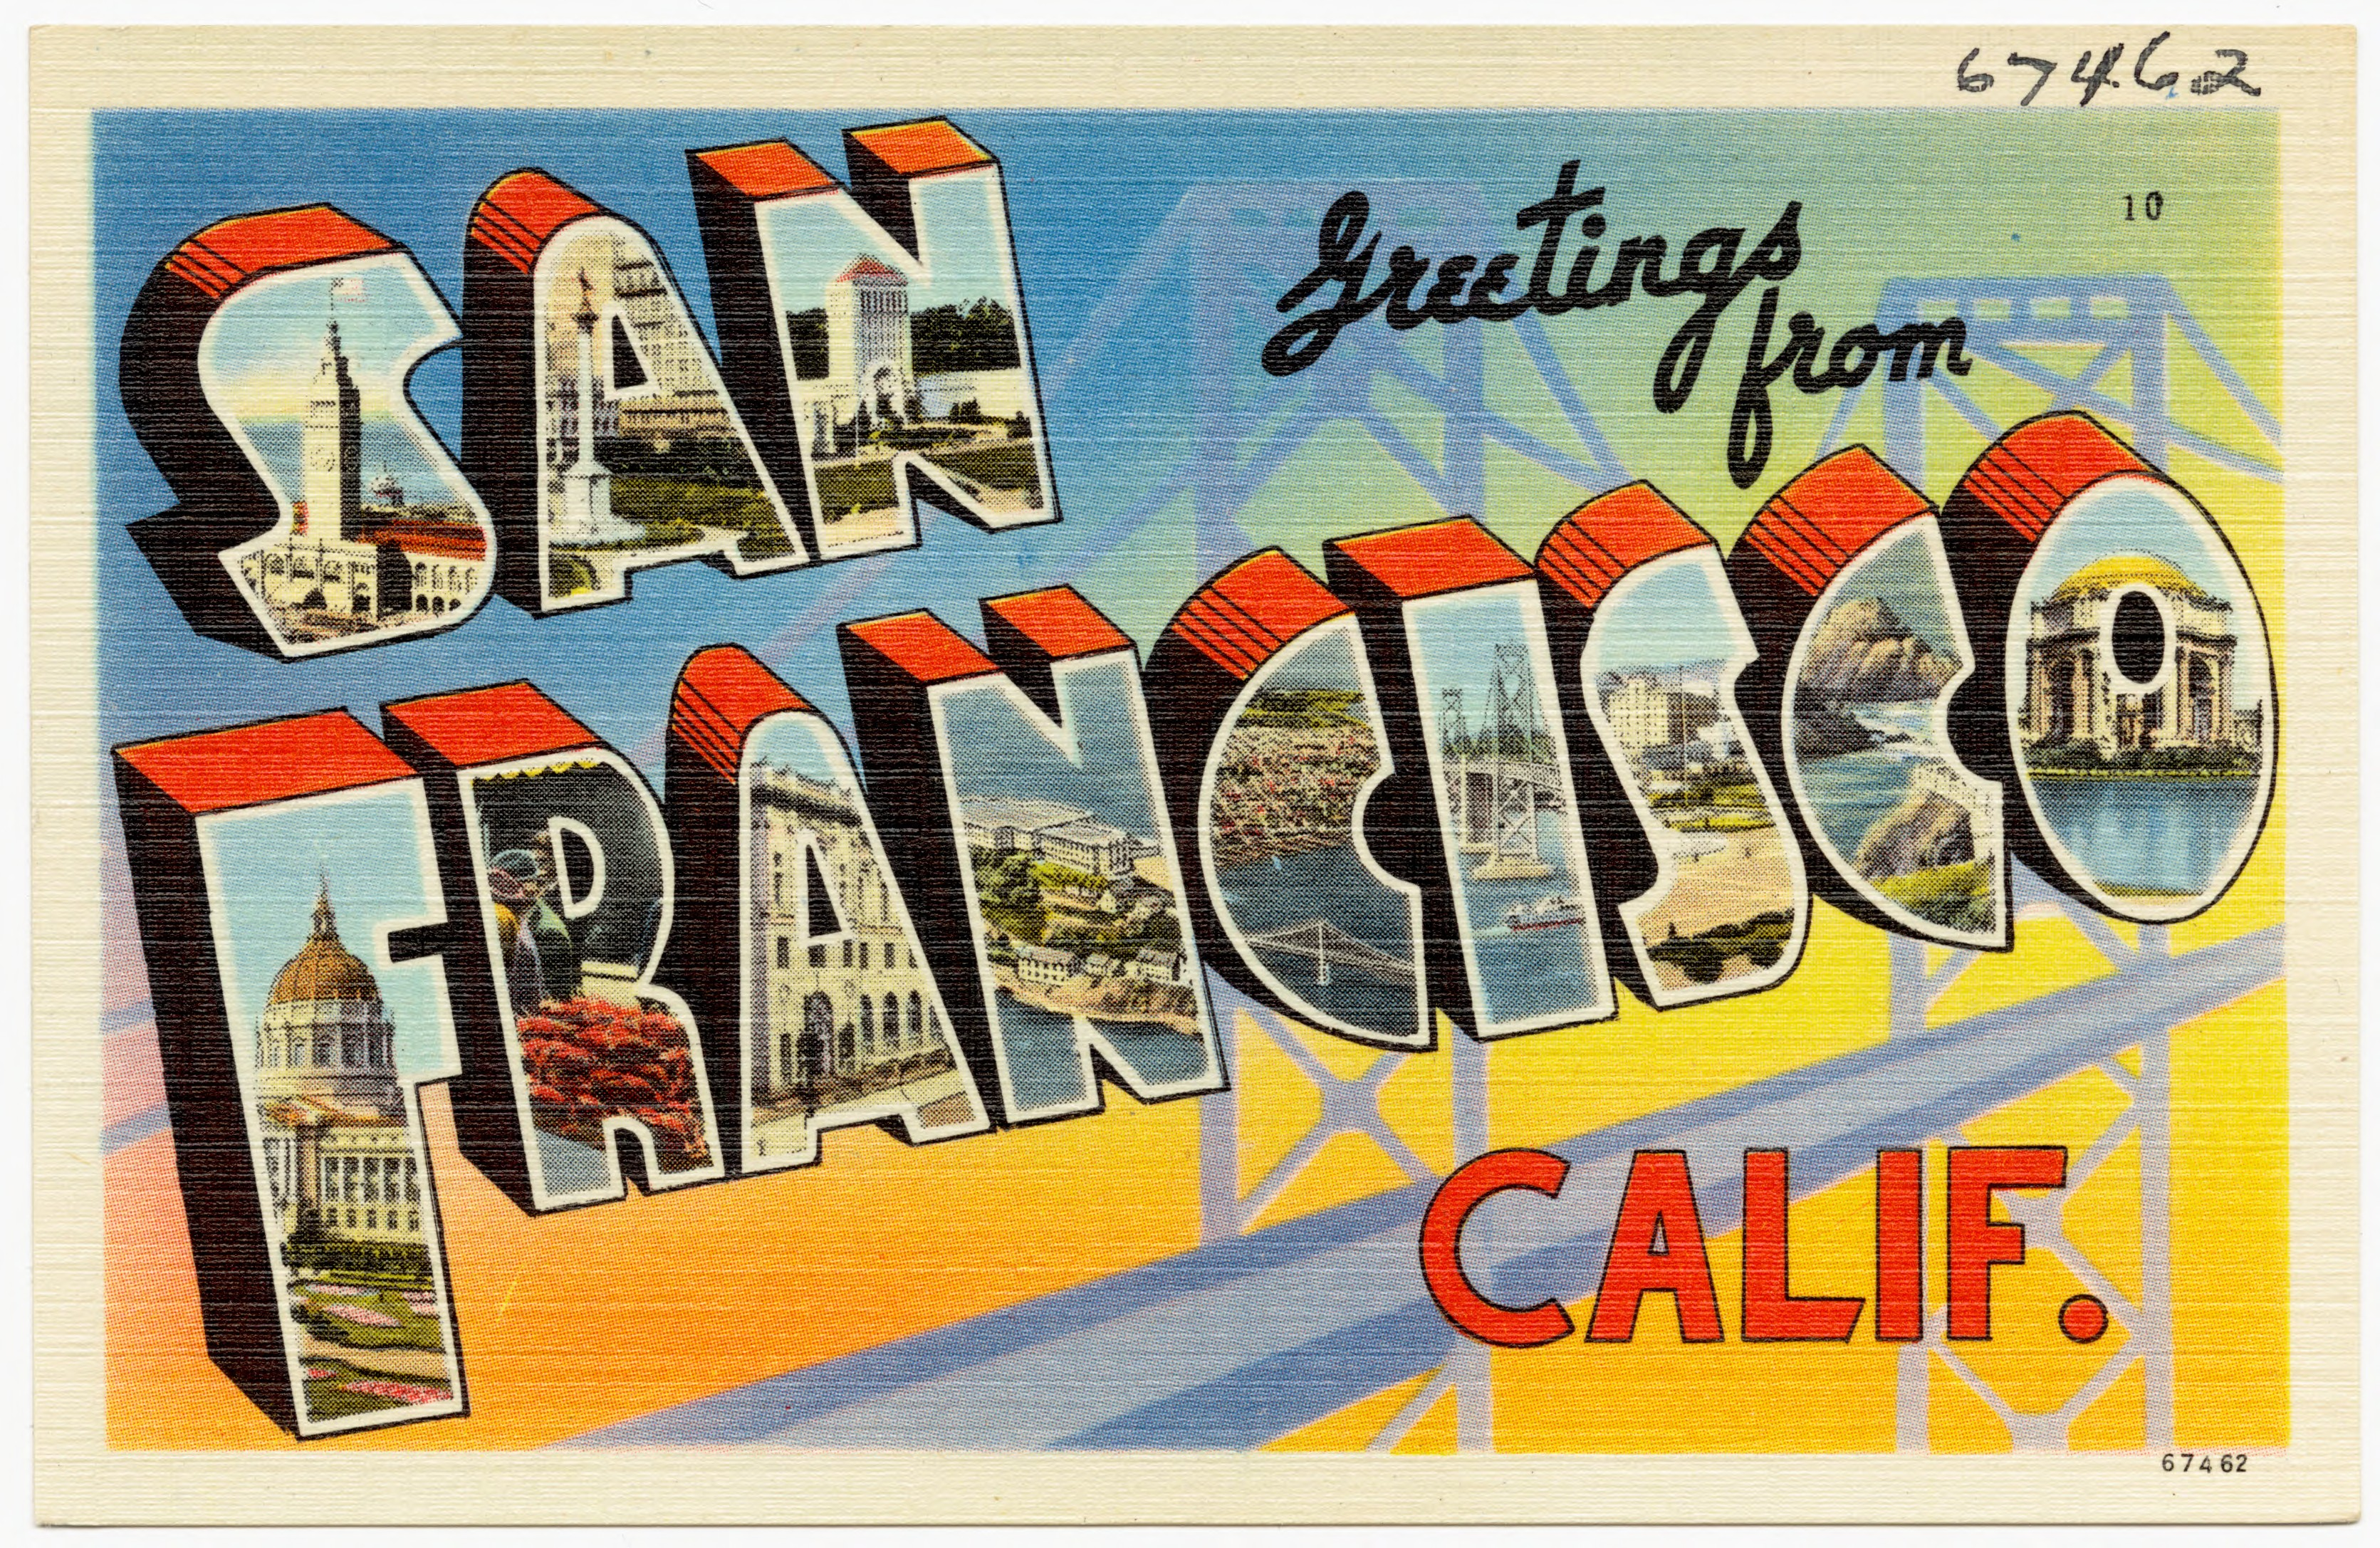 Filegreetings From San Francisco Calif 67462g Wikimedia Commons